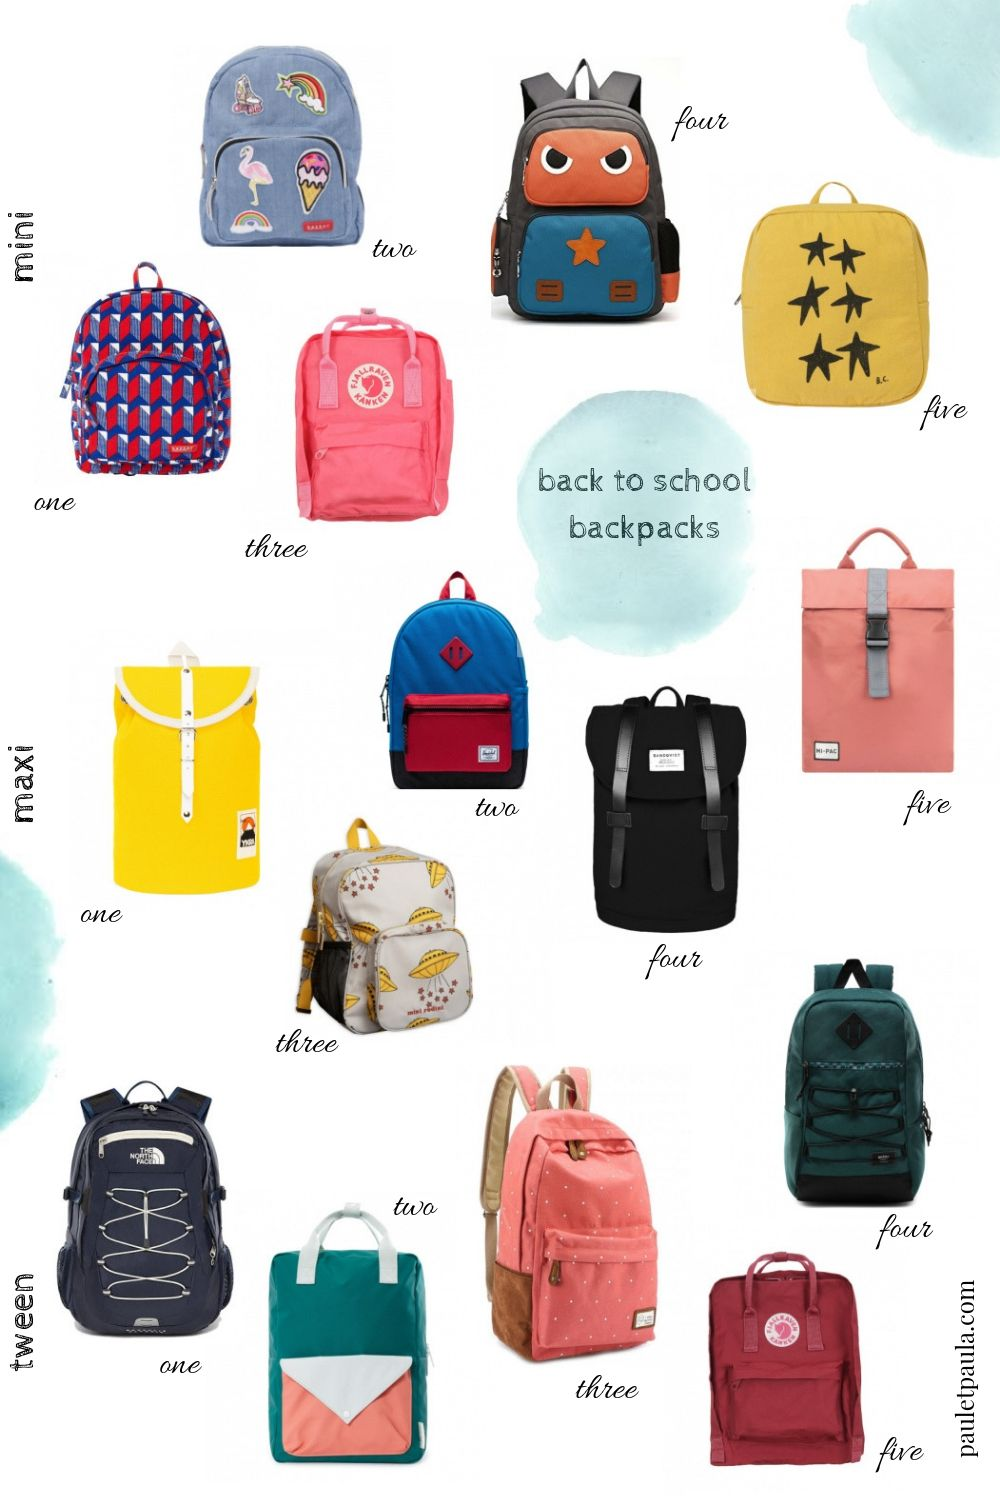 Back to School 2019 - backpacks from nursery to high school